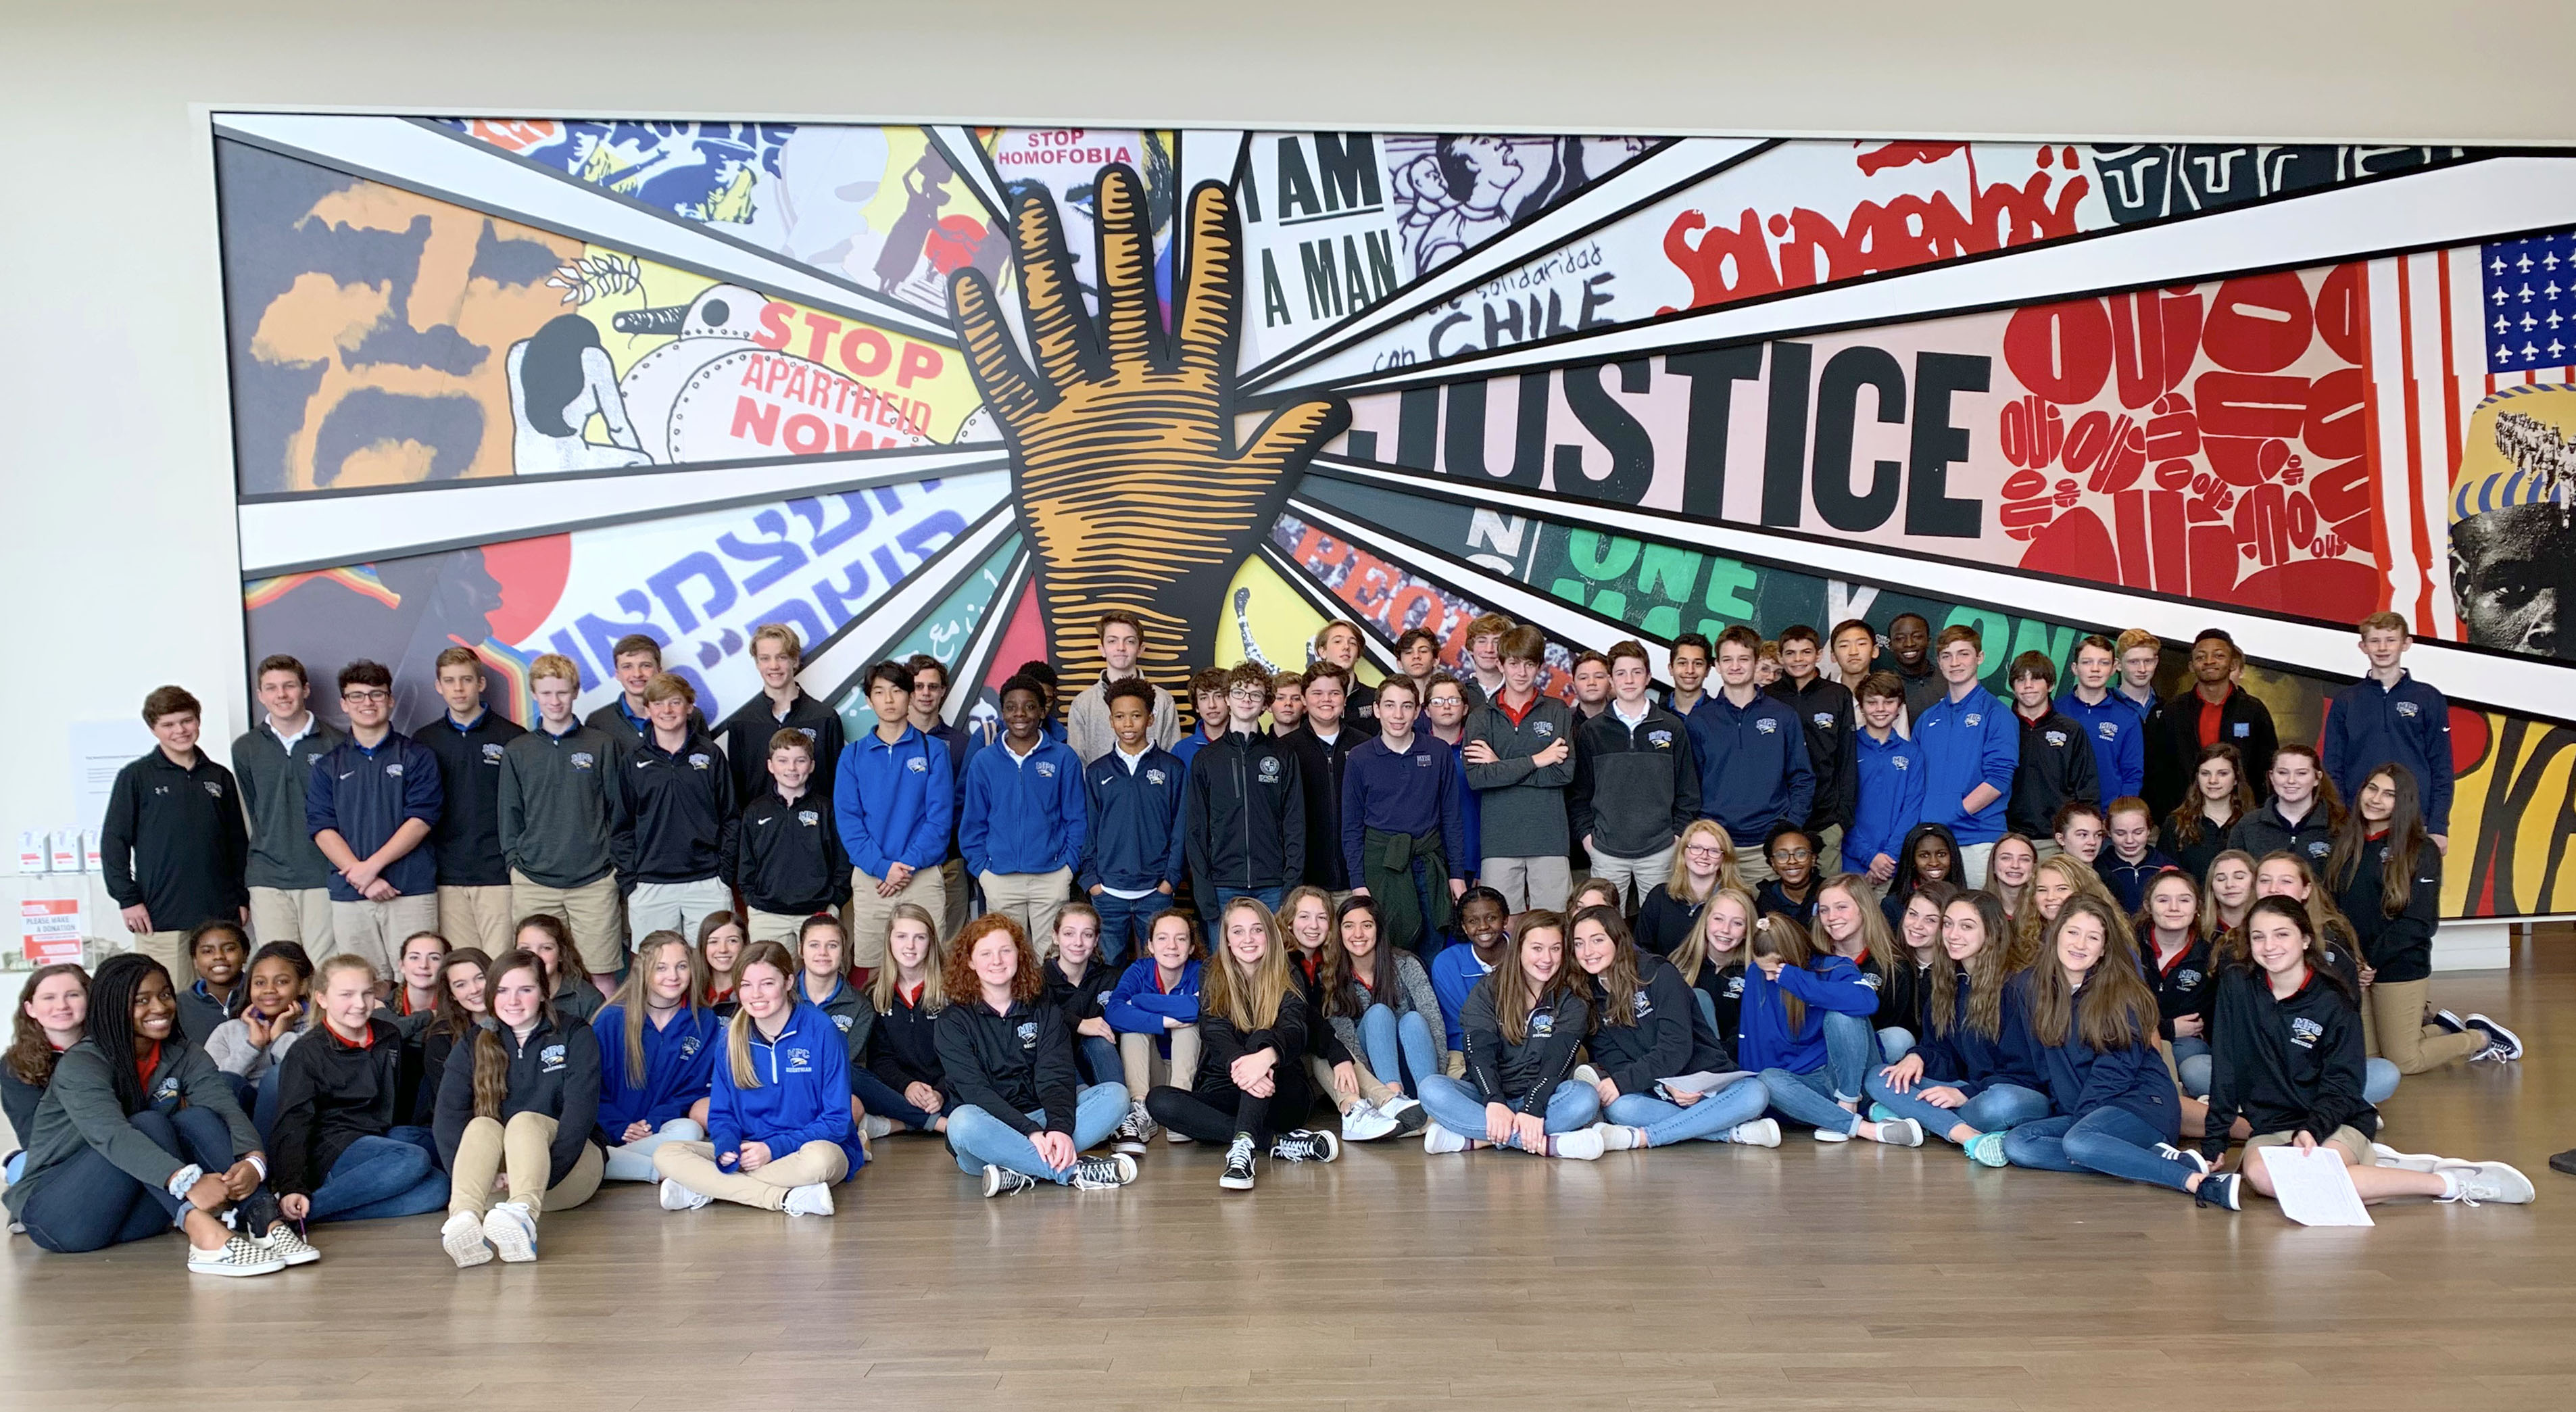 8th grade centerhumanrights trip